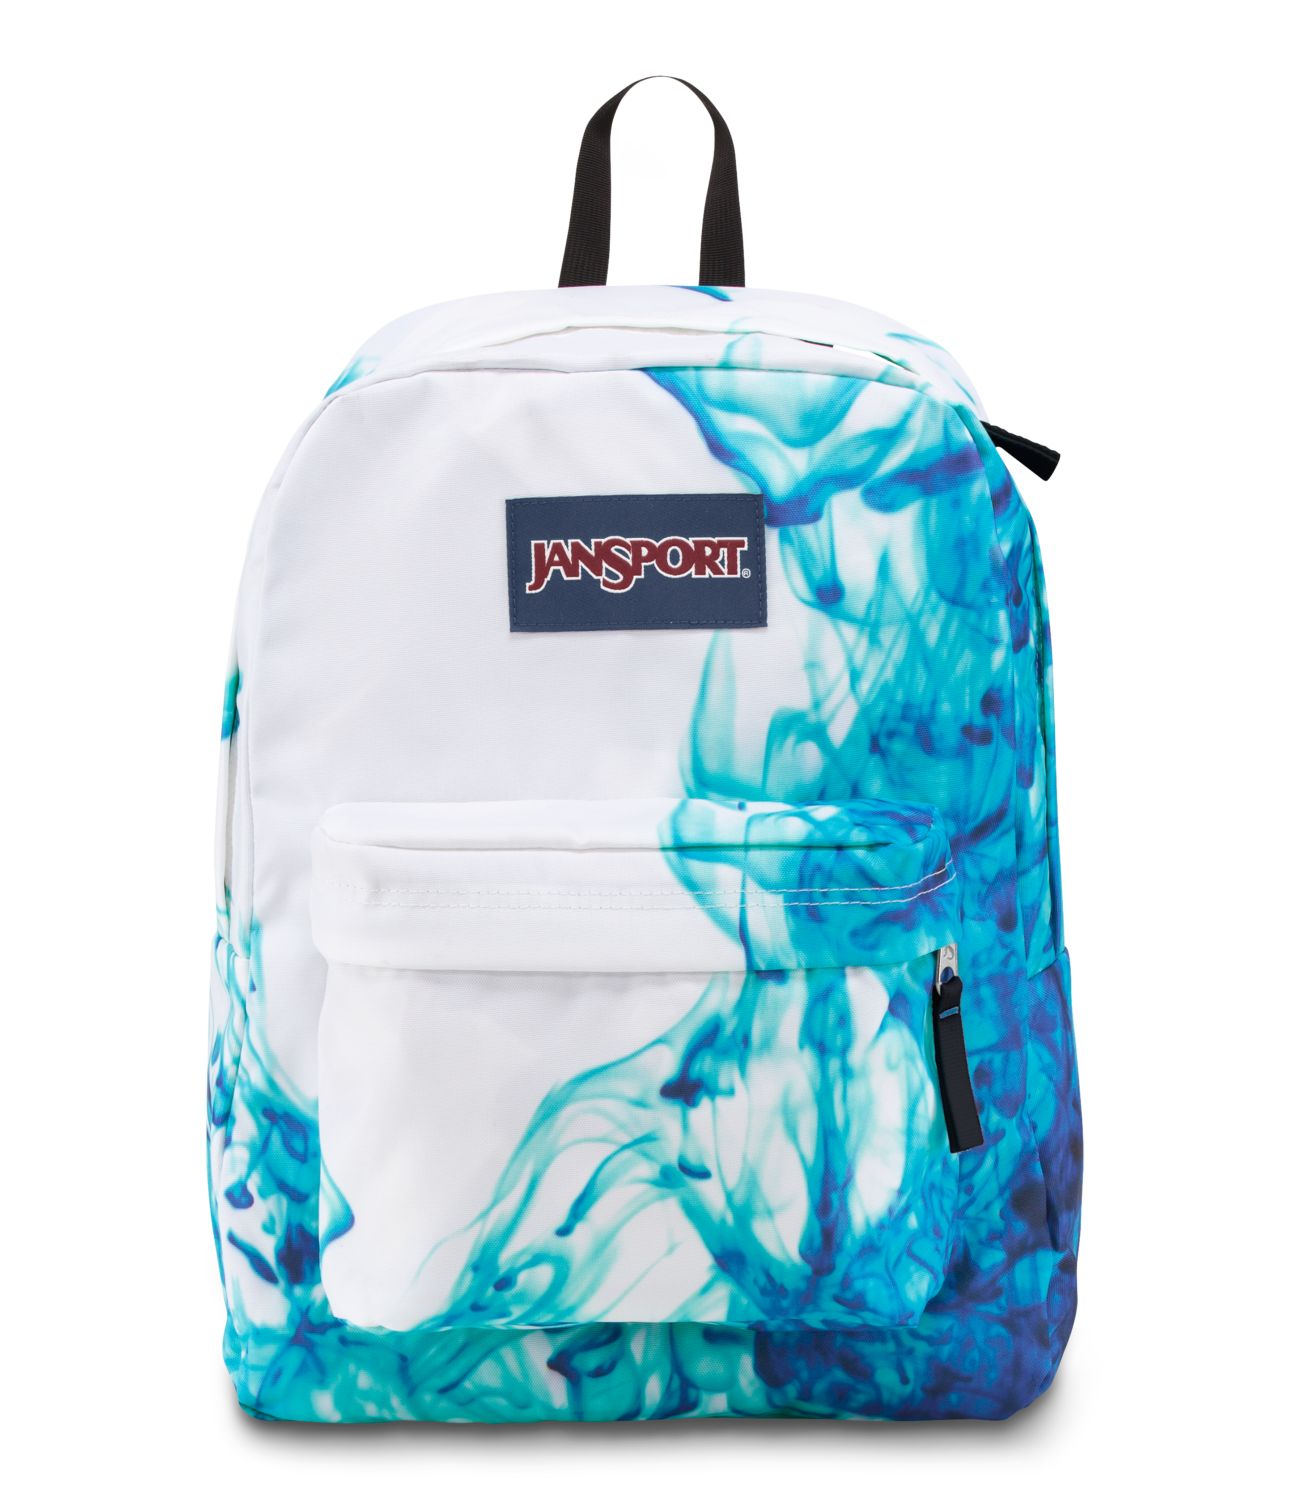 Jansport School Backpacks zrtCcwdb